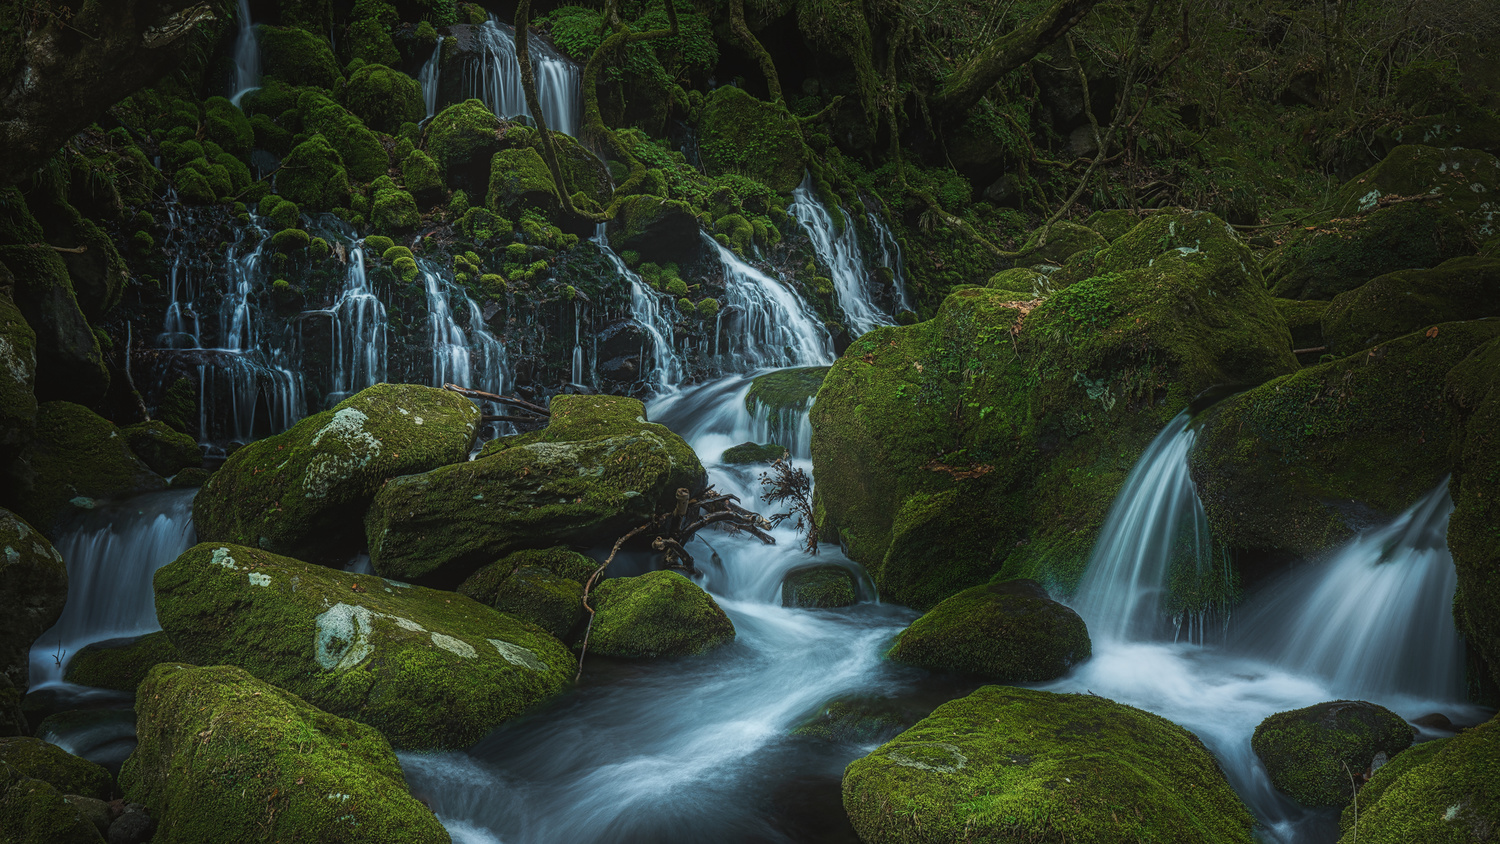 Mototaki waterfall by Shumon Saito